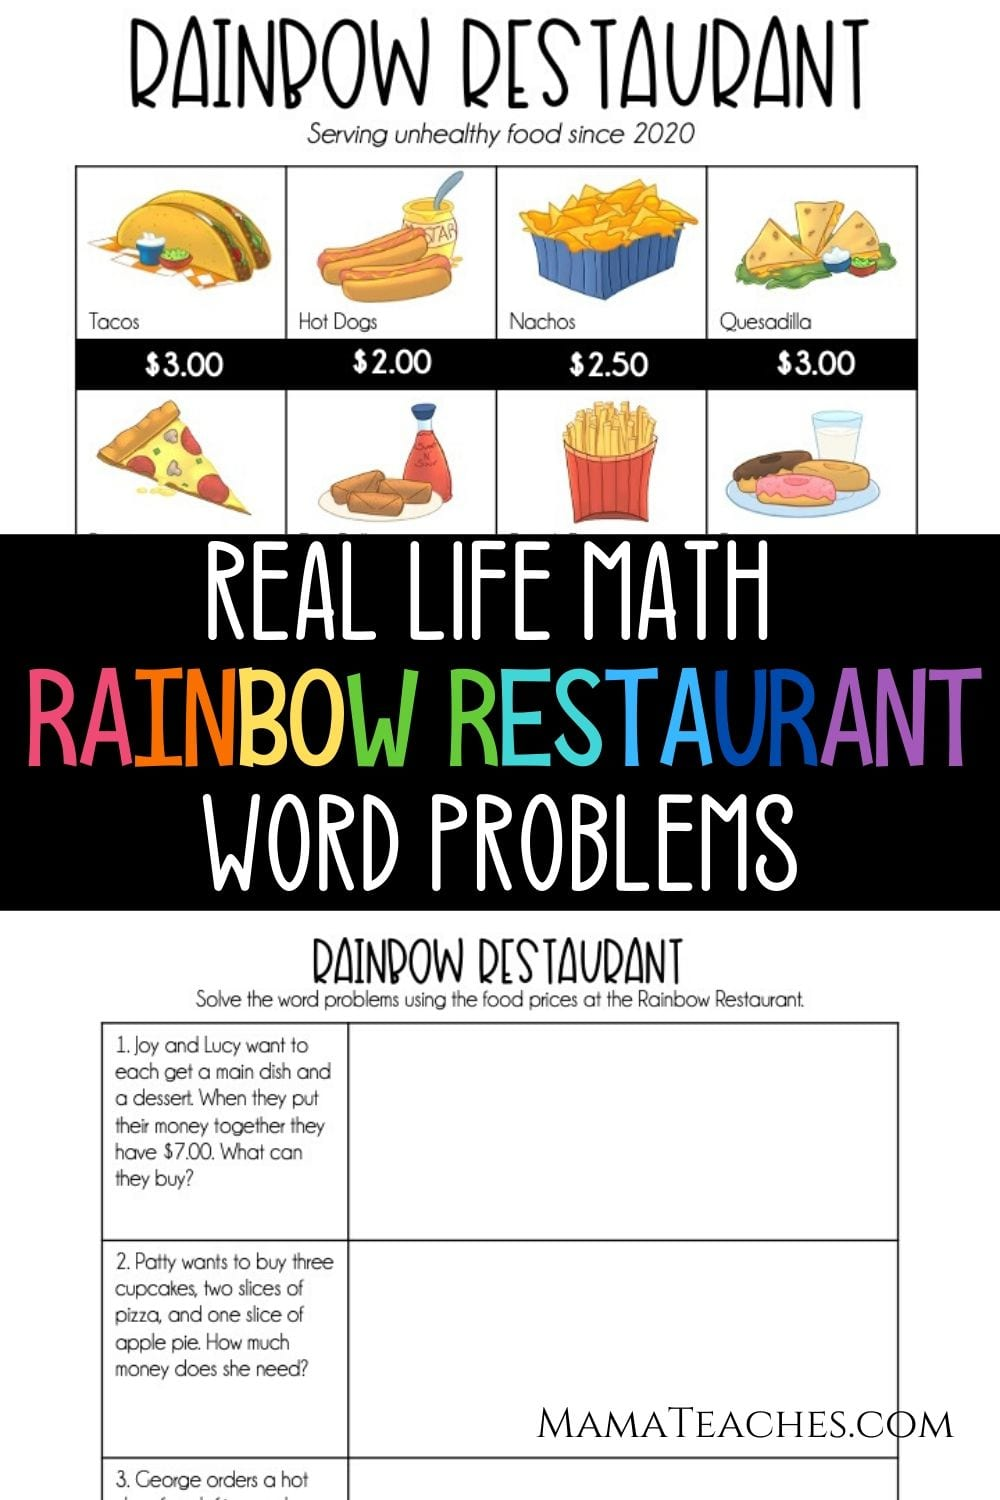 Rainbow Restaurant - Real Life Math Word Problems for Upper Elementary - MamaTeaches.com